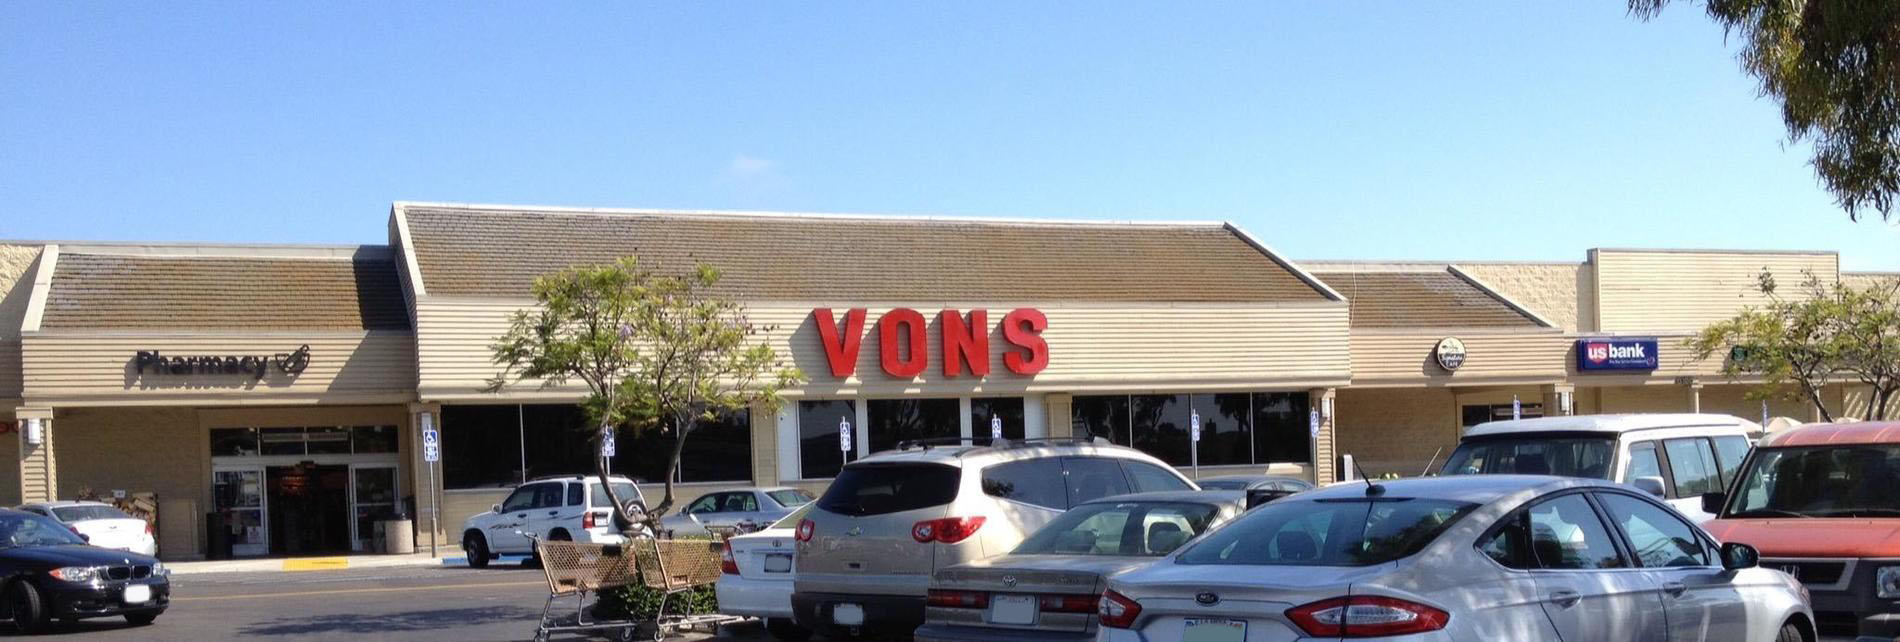 Vons Store Front Picture at 6155 El Cajon Blvd in San Diego CA